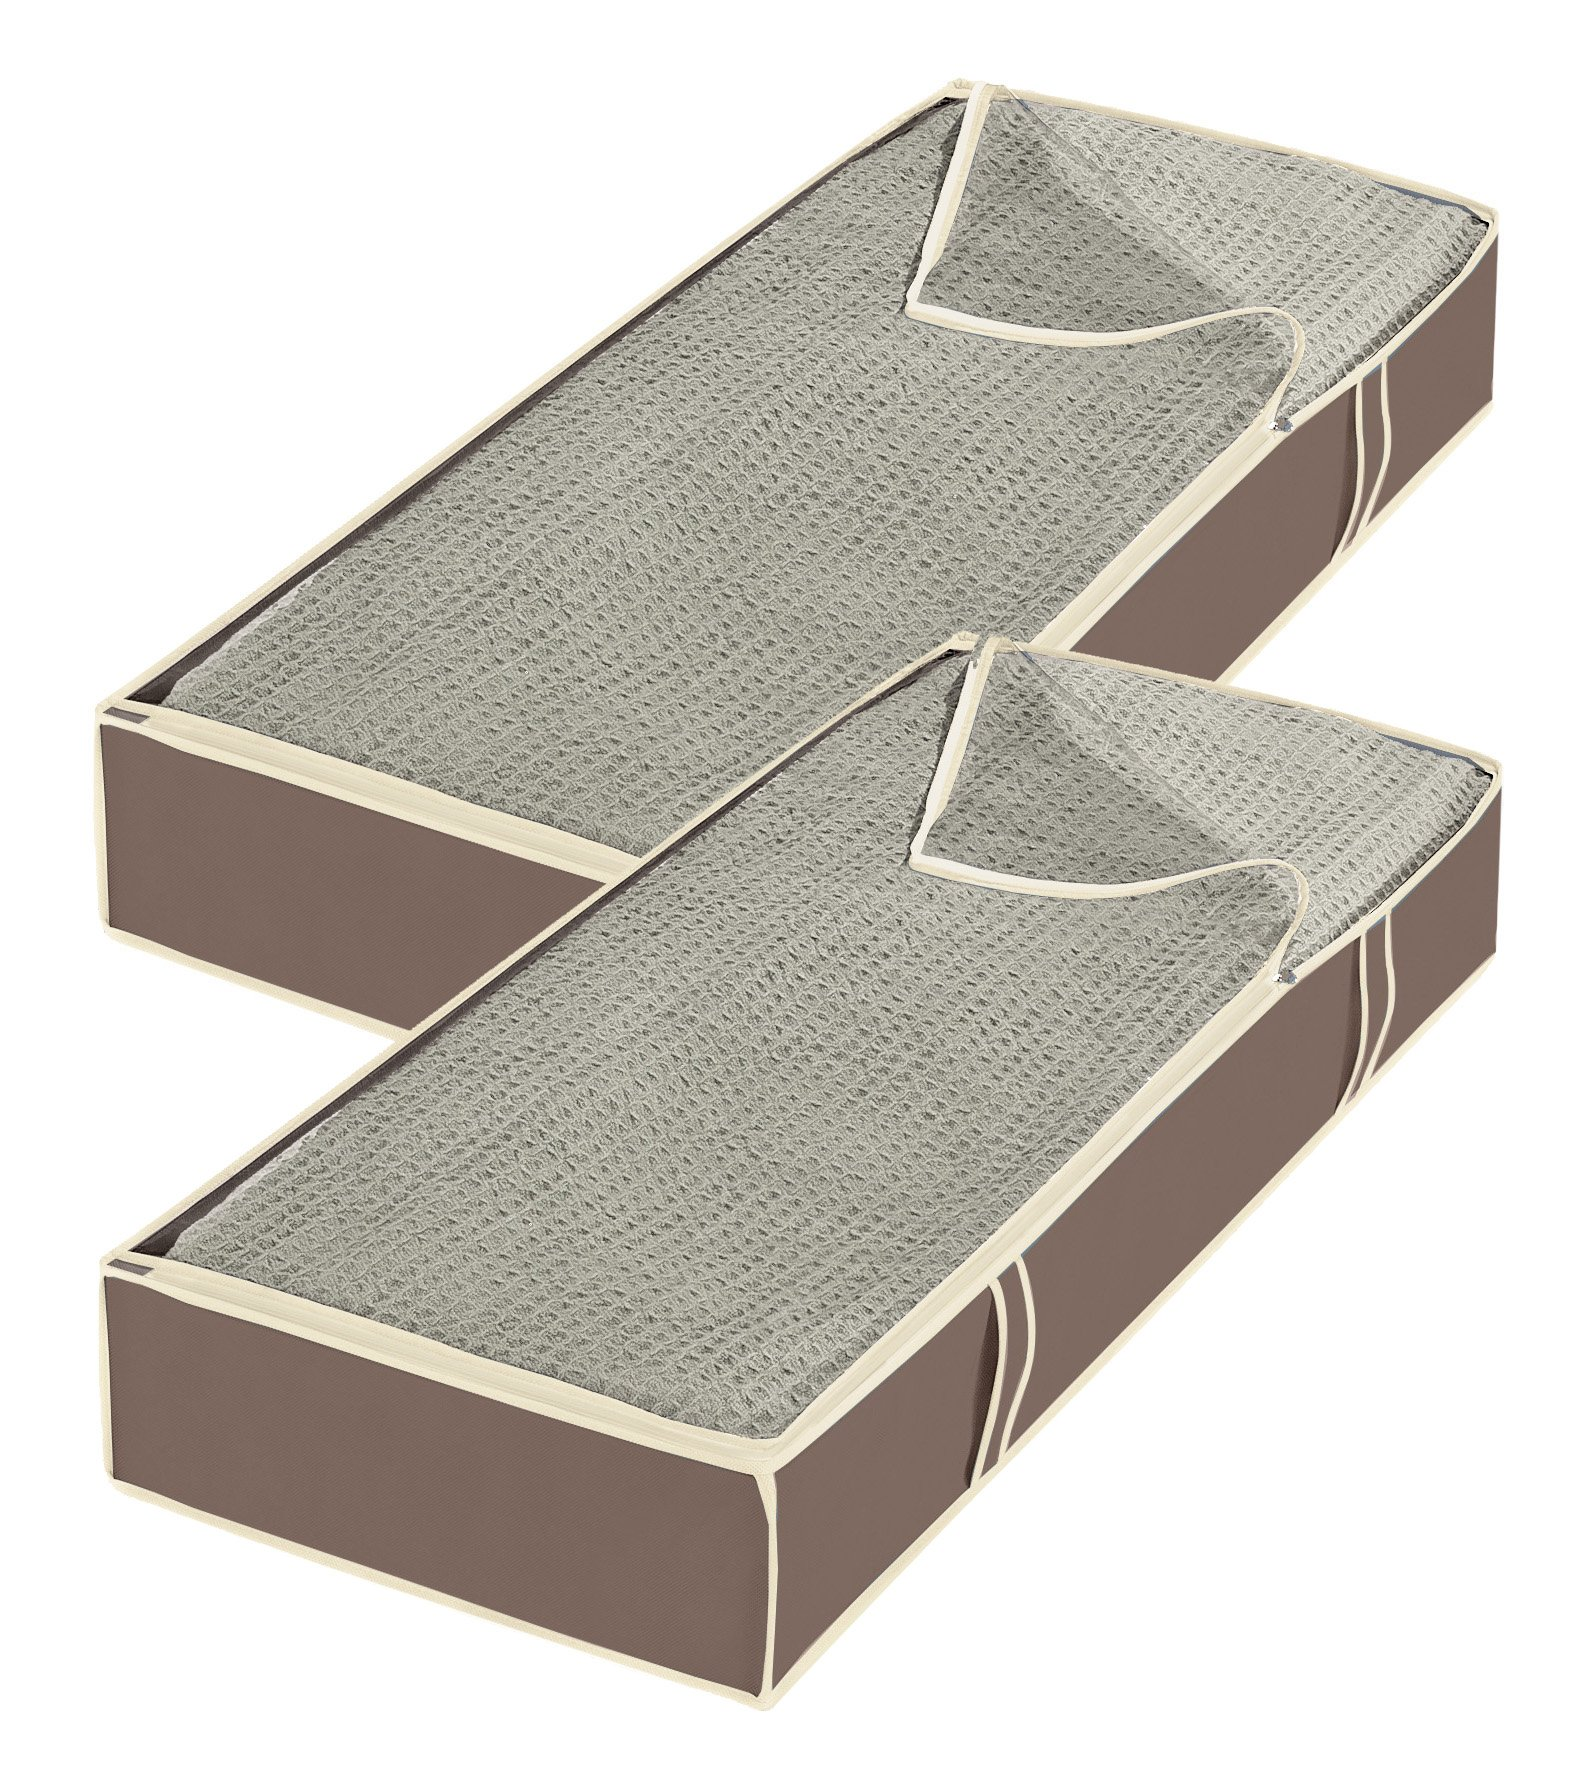 Whitmor,Zippered Underbed Bags, S/2